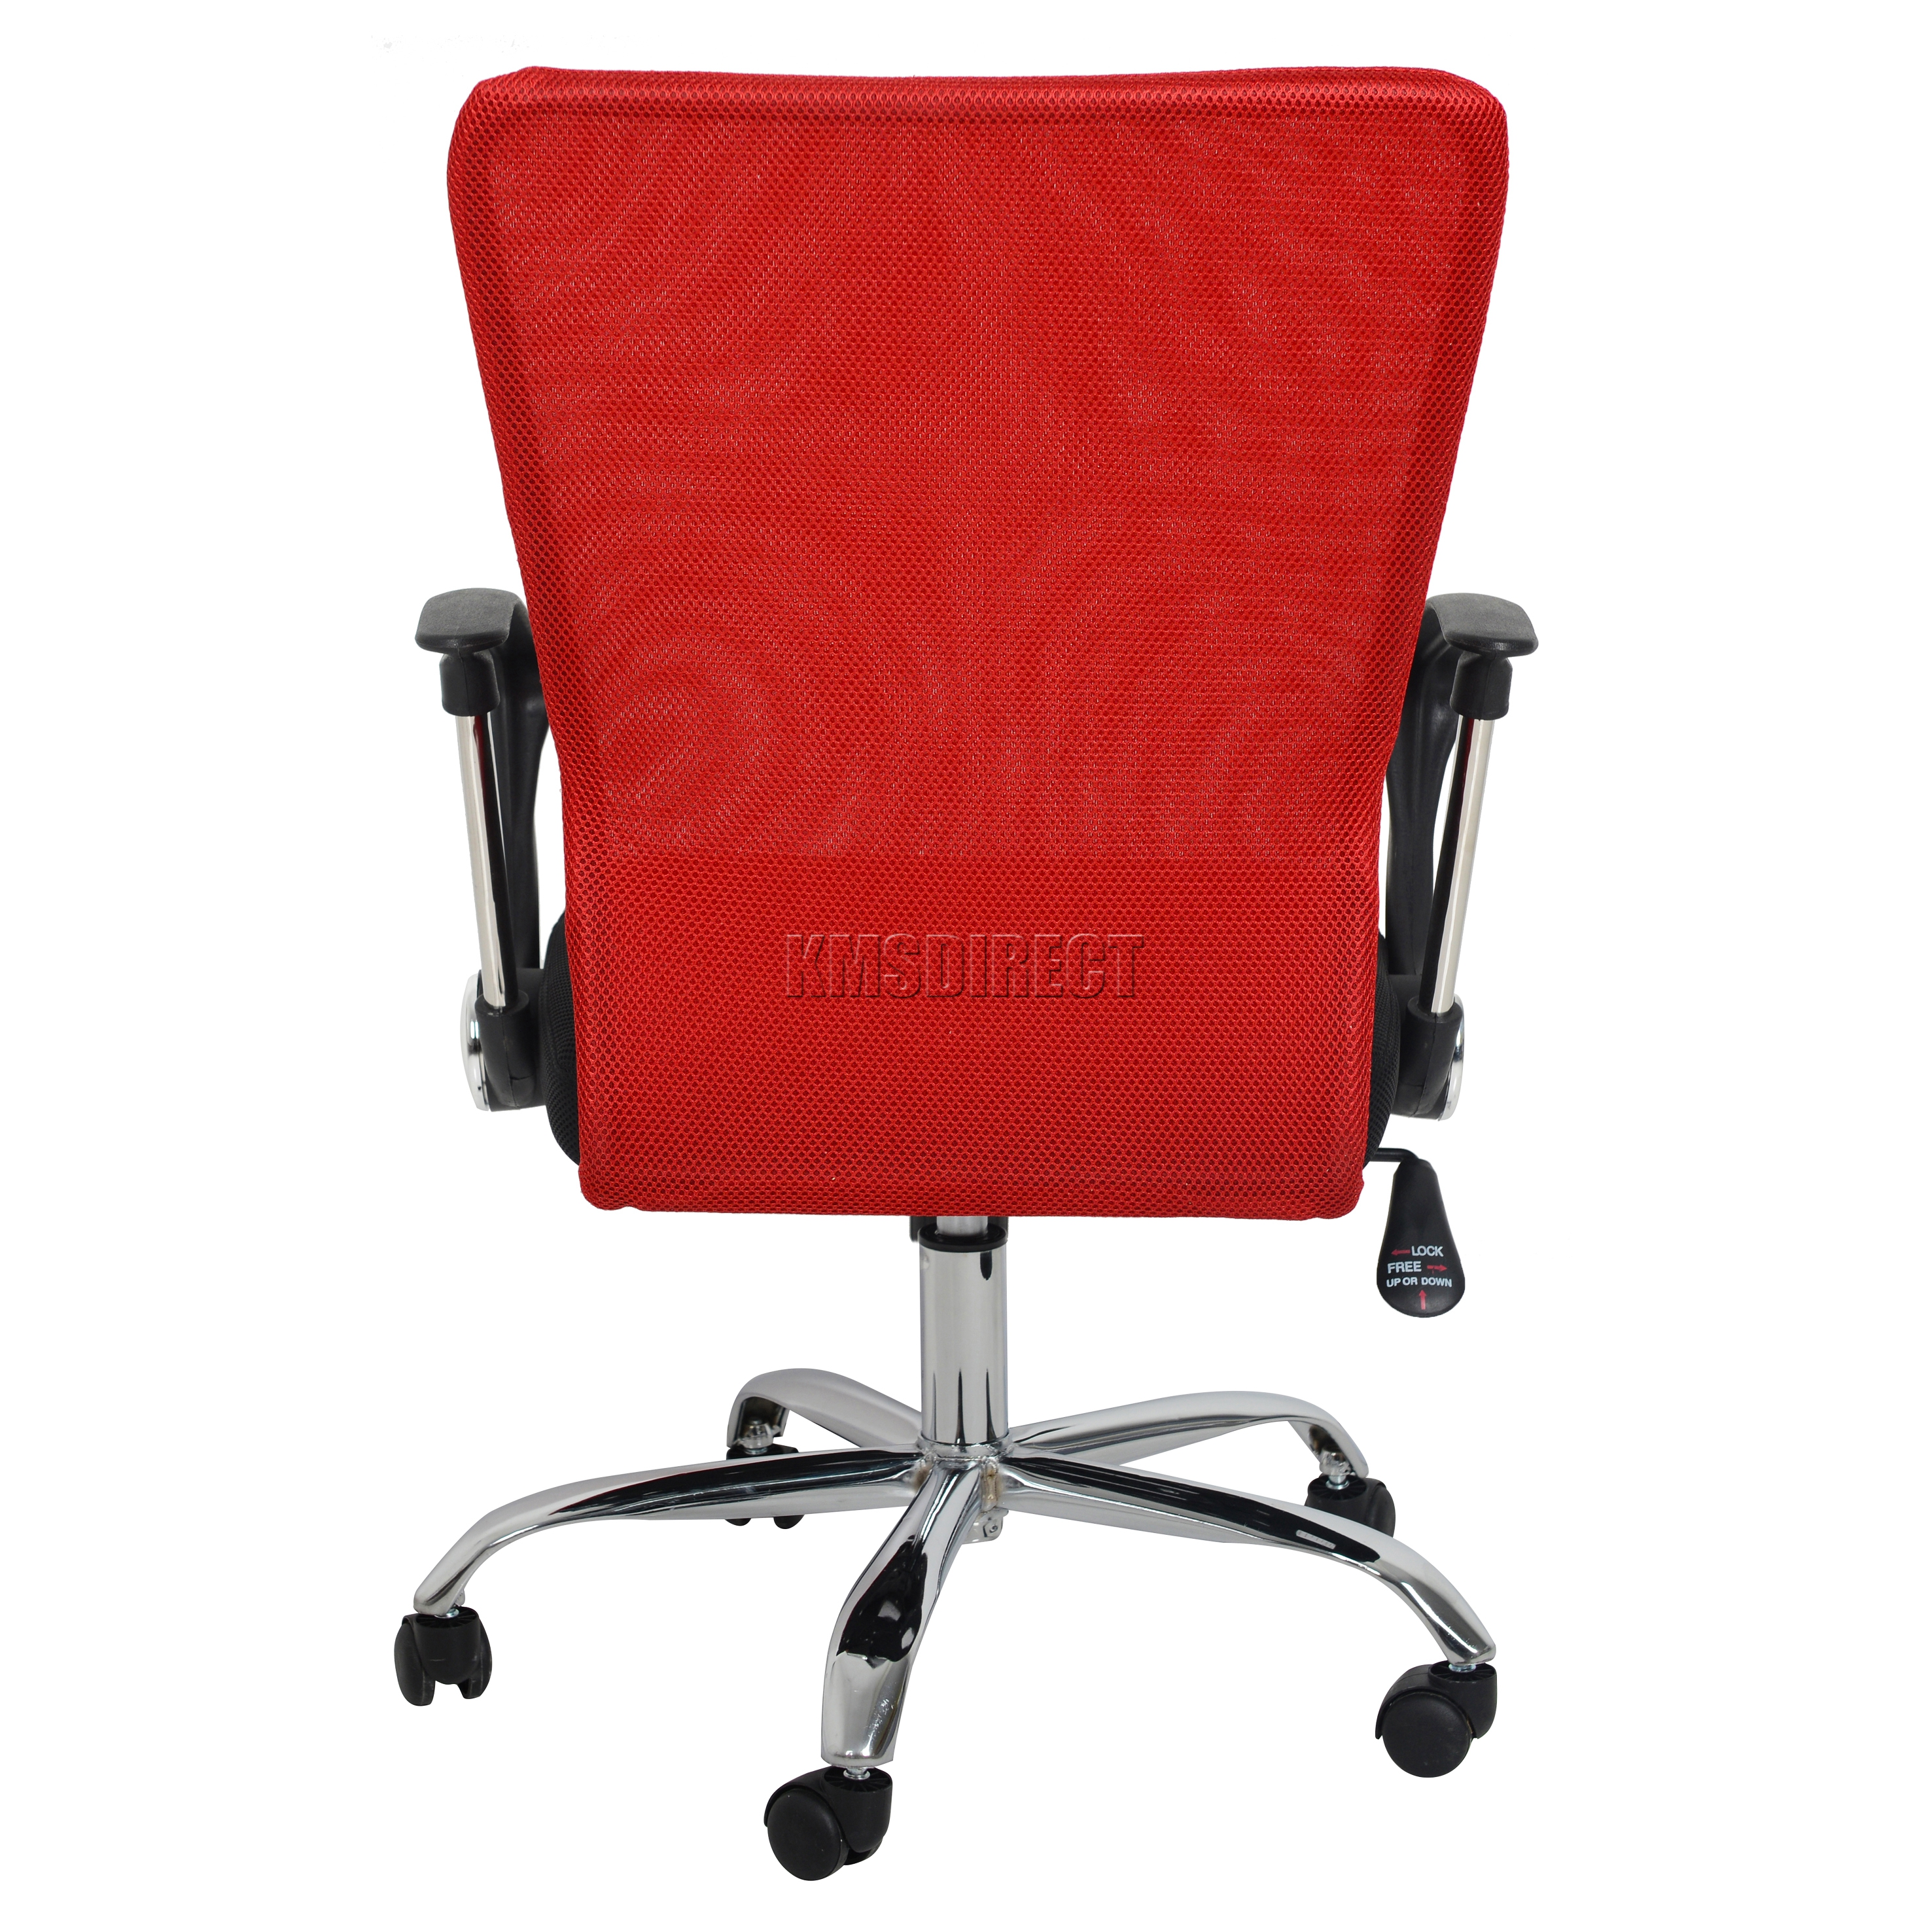 Sentinel Foxhunter Computer Executive Office Desk Chair Mesh Fabric Swivel High Back Oc11